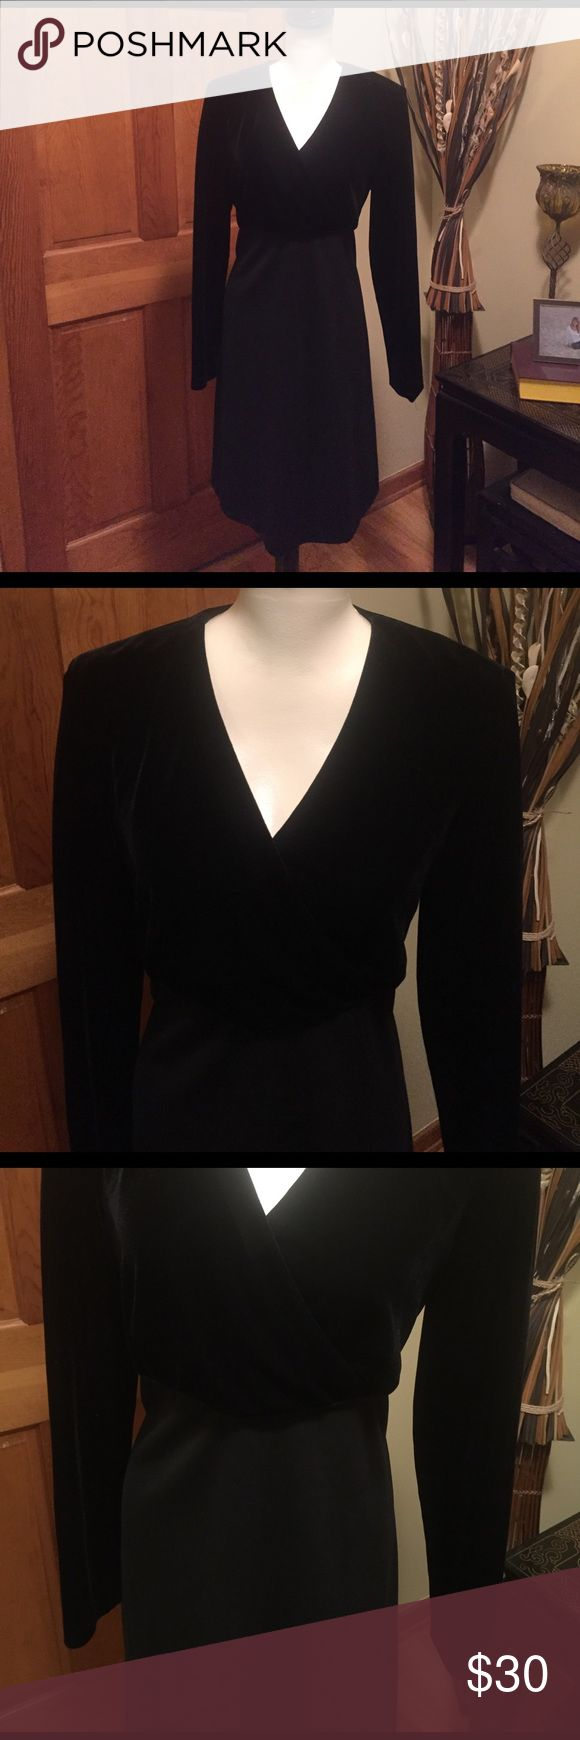 Donna Ricco BEAUTIFUL black dress Donna Ricco black dress - soft velour feel on top. Lightly worn great condition.   Size 12 (tag has been removed). LOVELY AND CLASSY look Donna Ricco Dresses